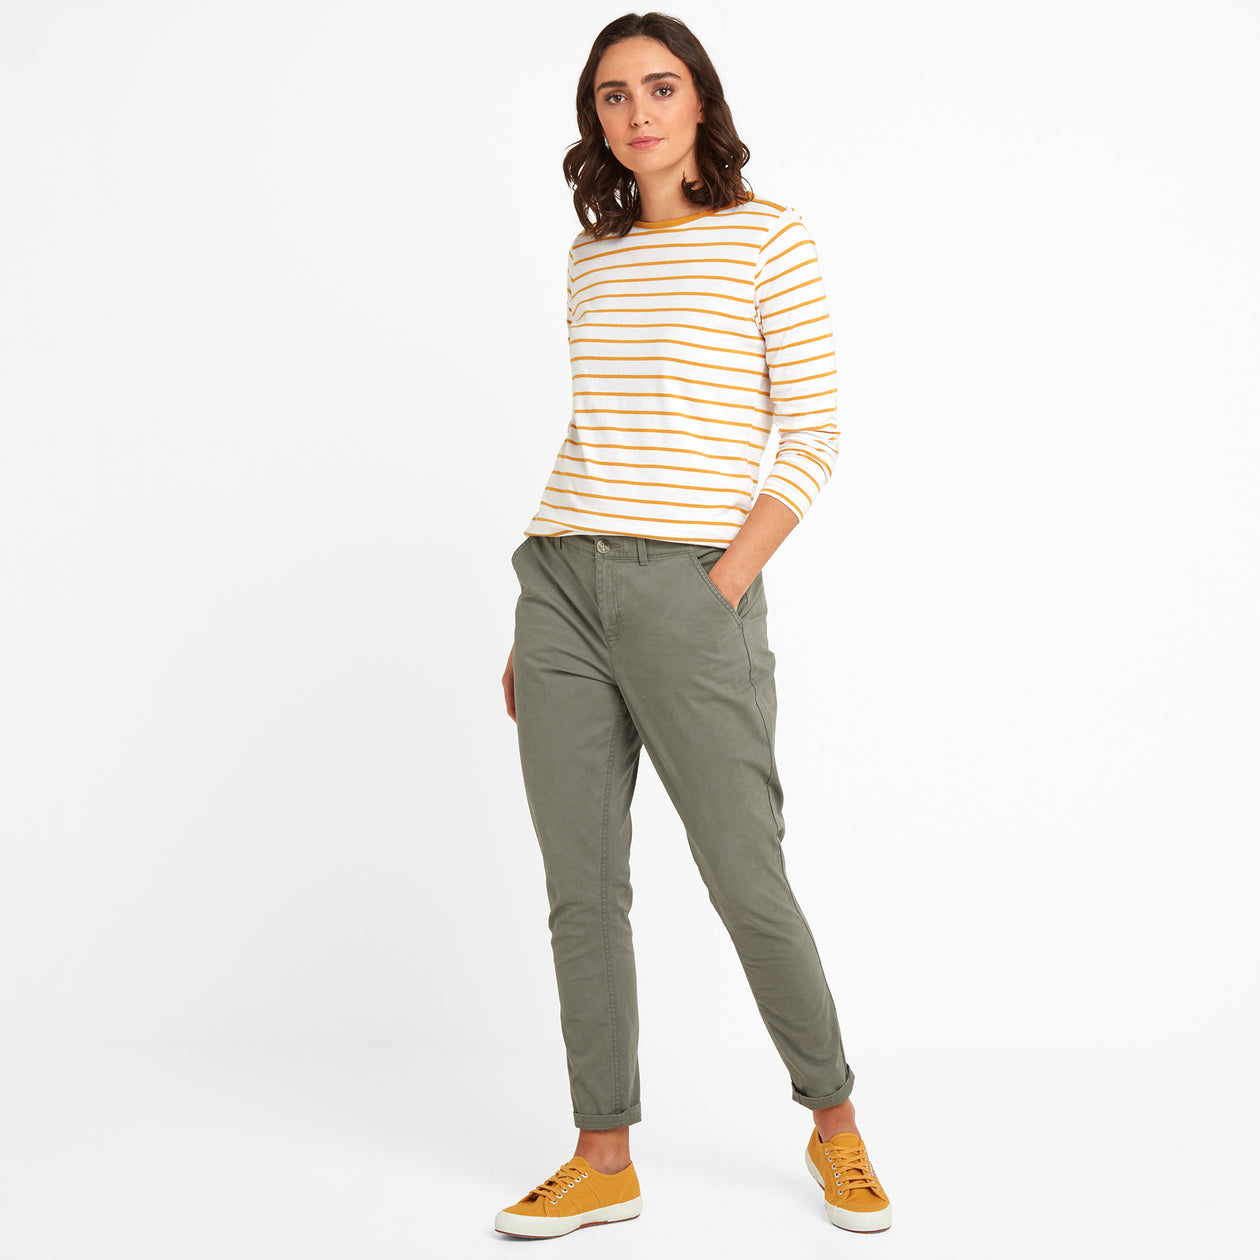 Pickering Womens Trousers Short - Khaki image 4